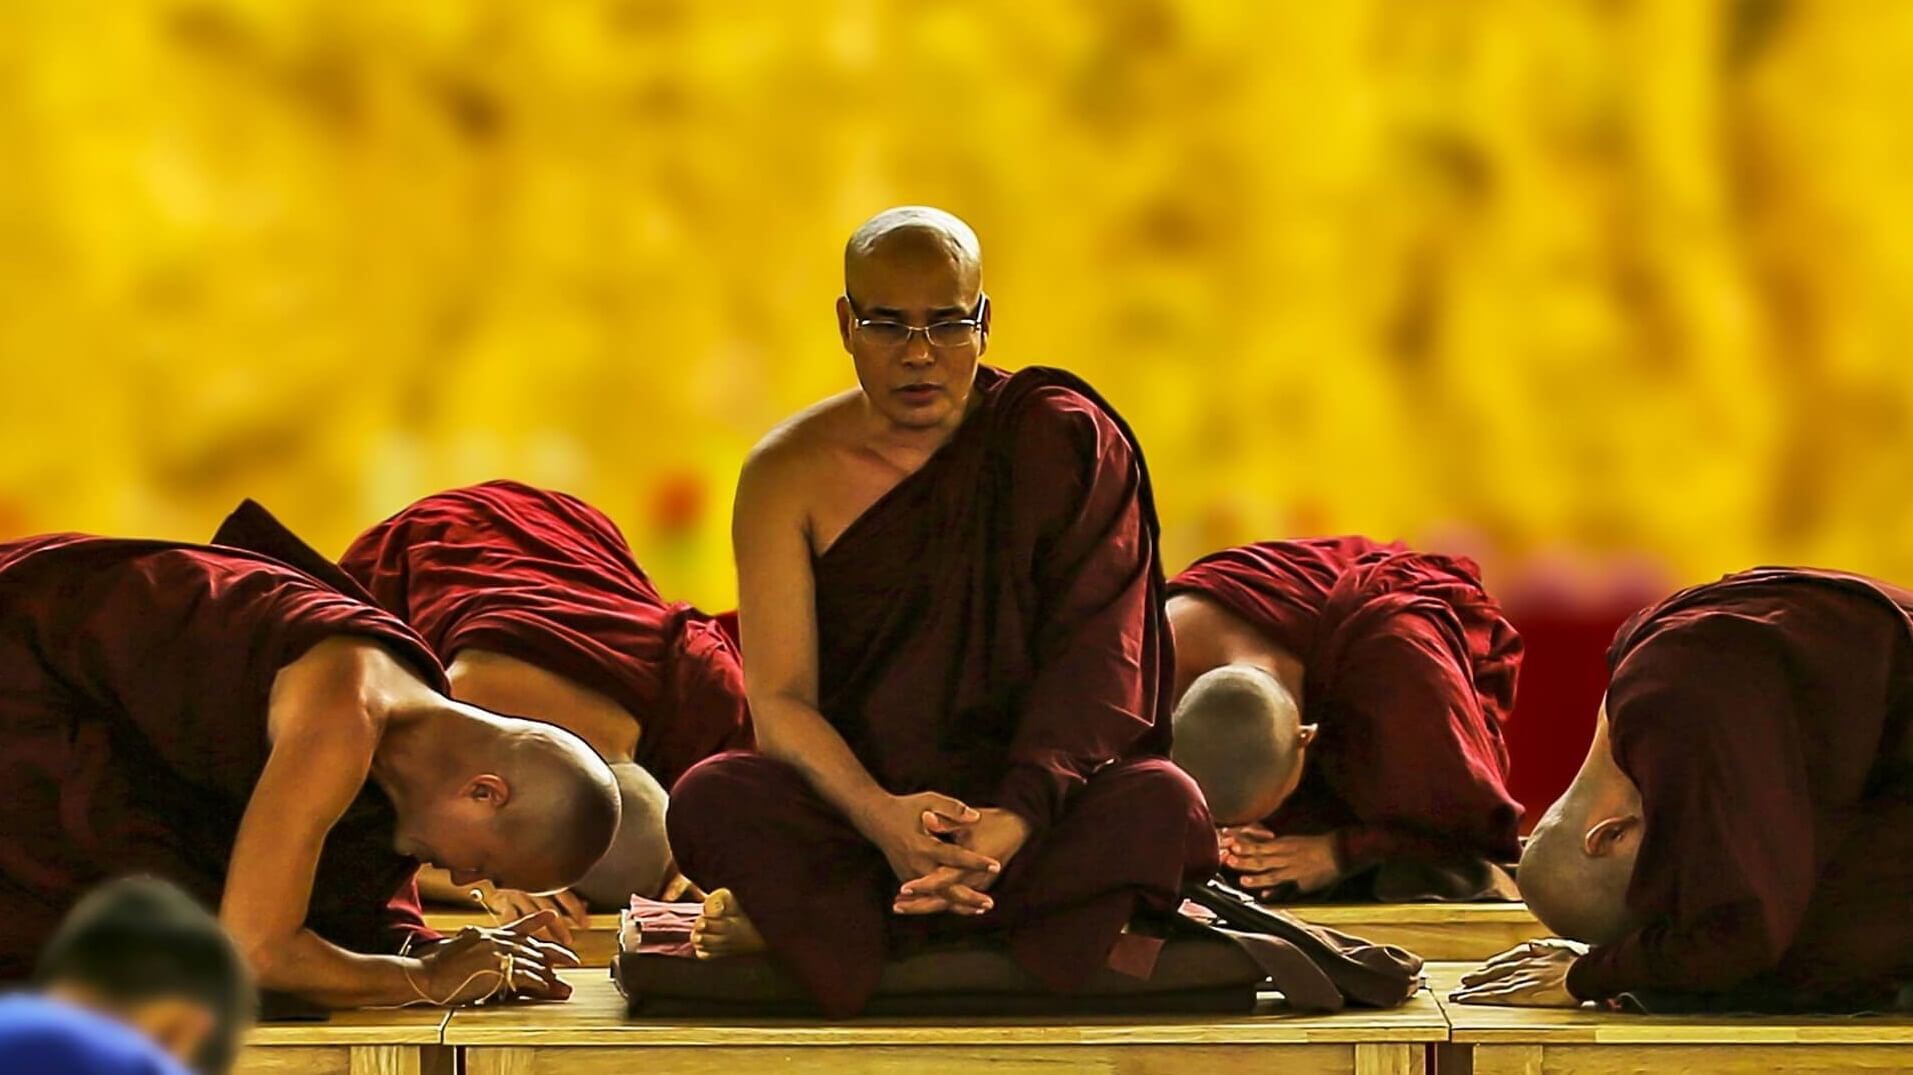 Buddhist and his disciples